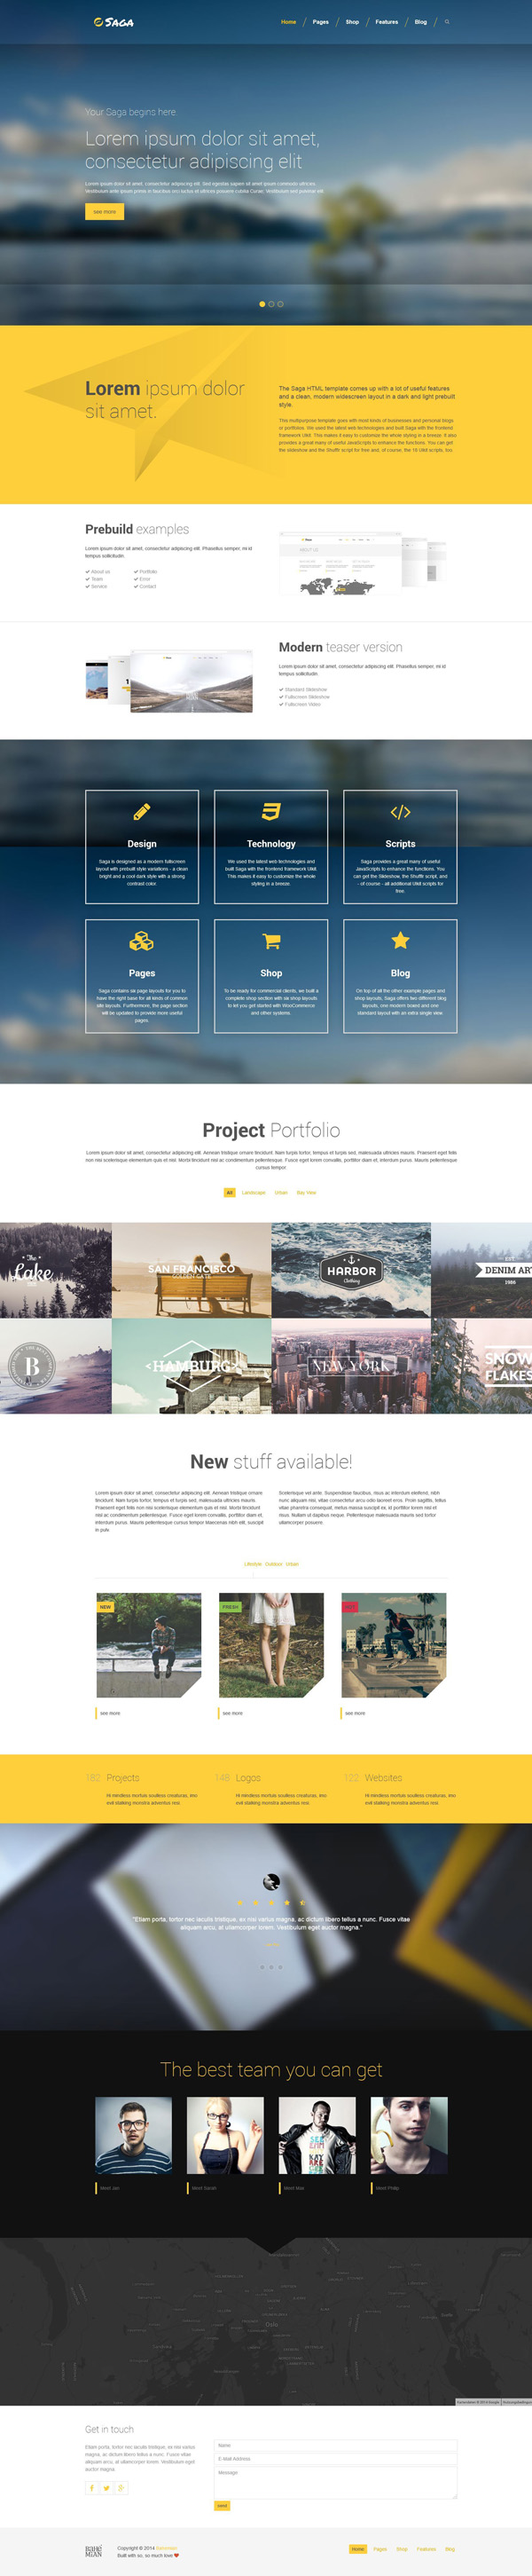 Saga - Multipurpose HTML5/CSS3/LESS template